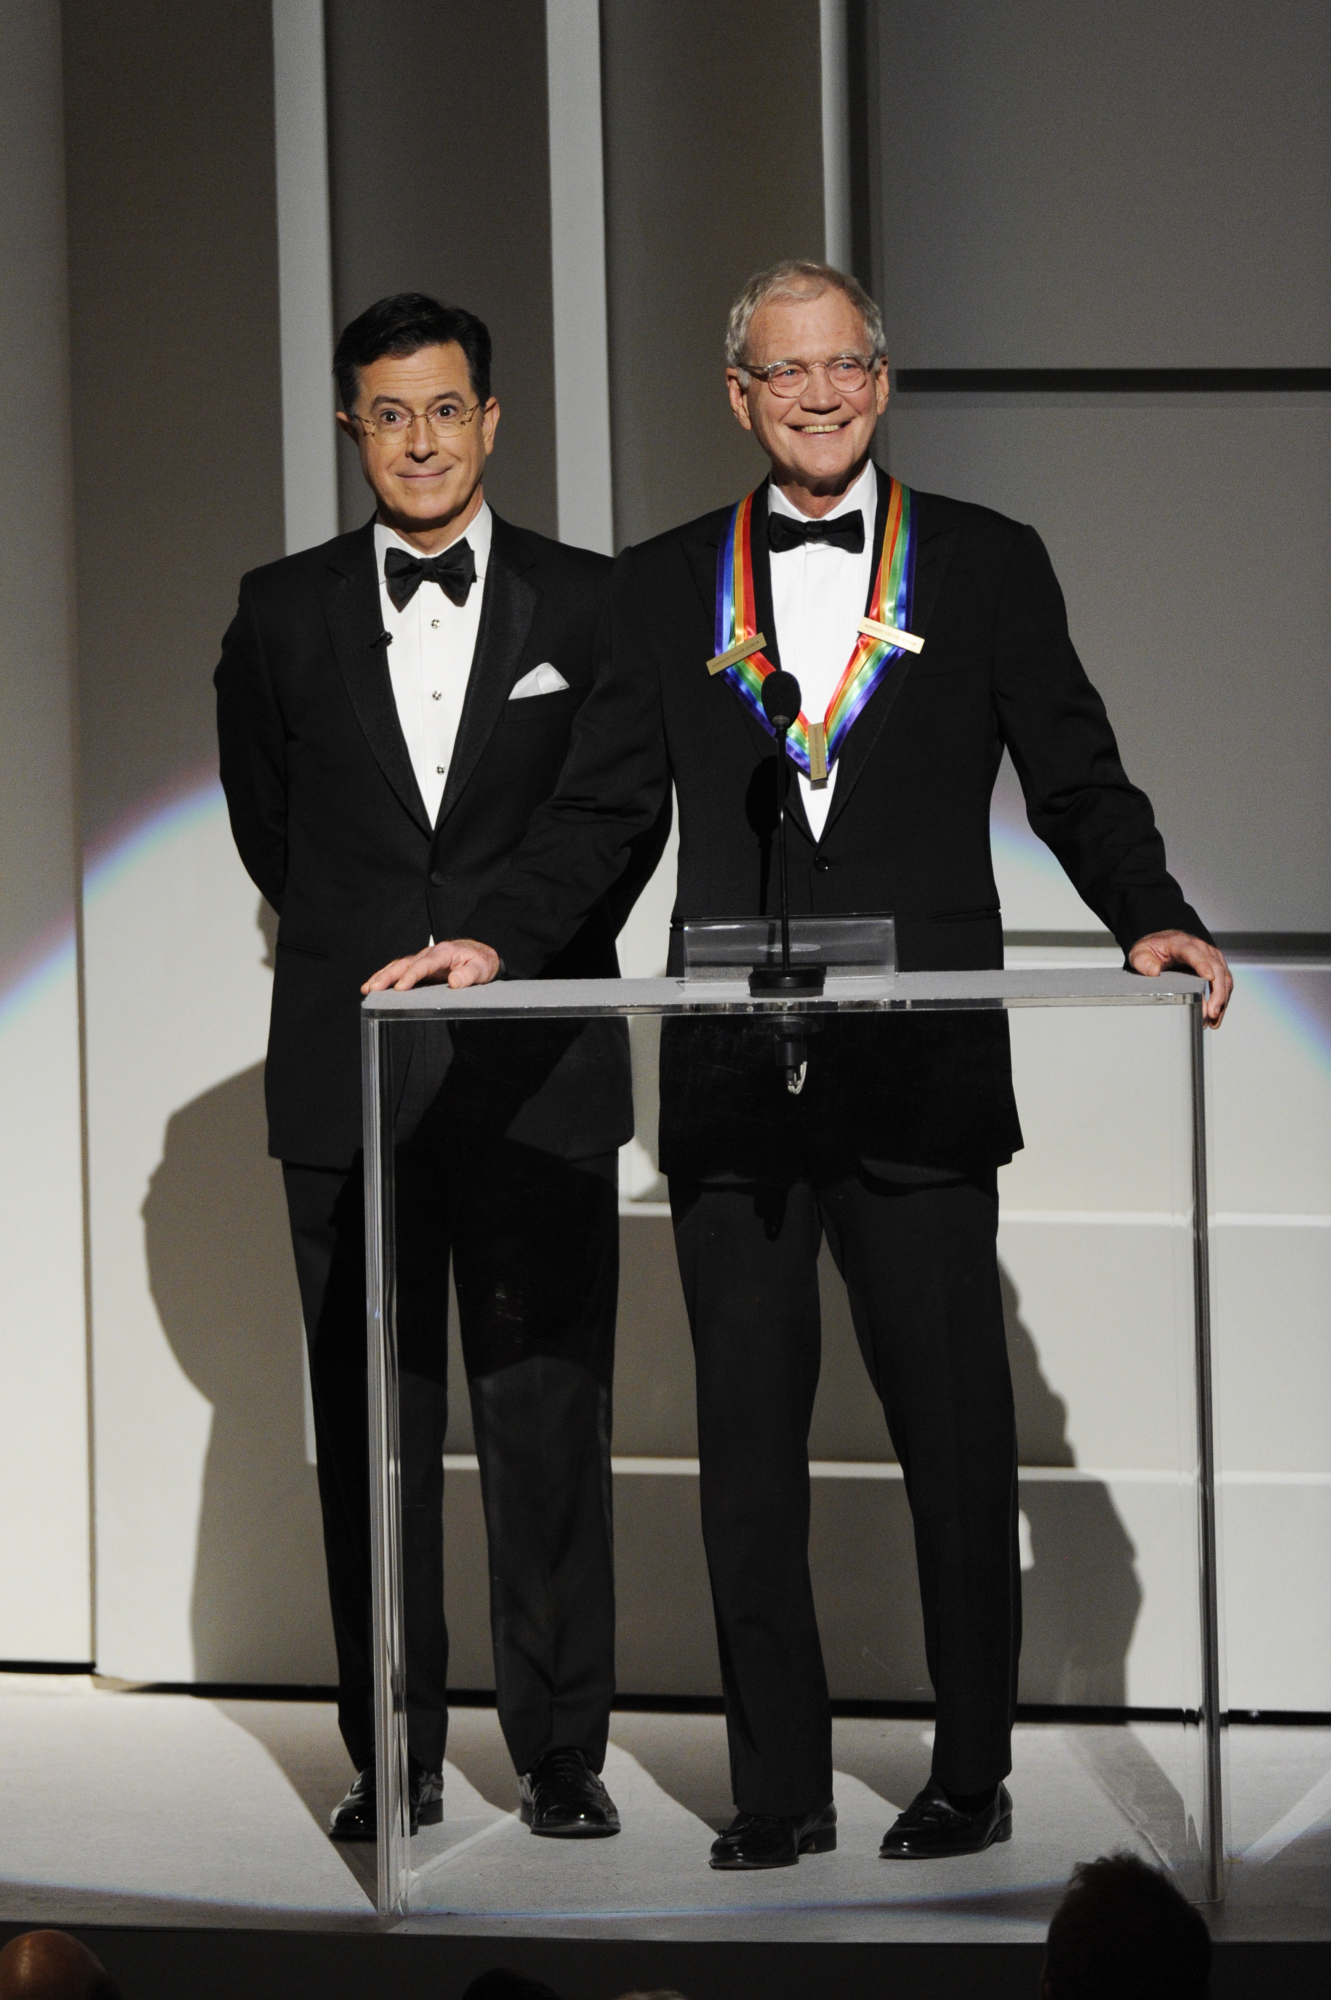 Stephen Colbert and David Letterman Share the Stage